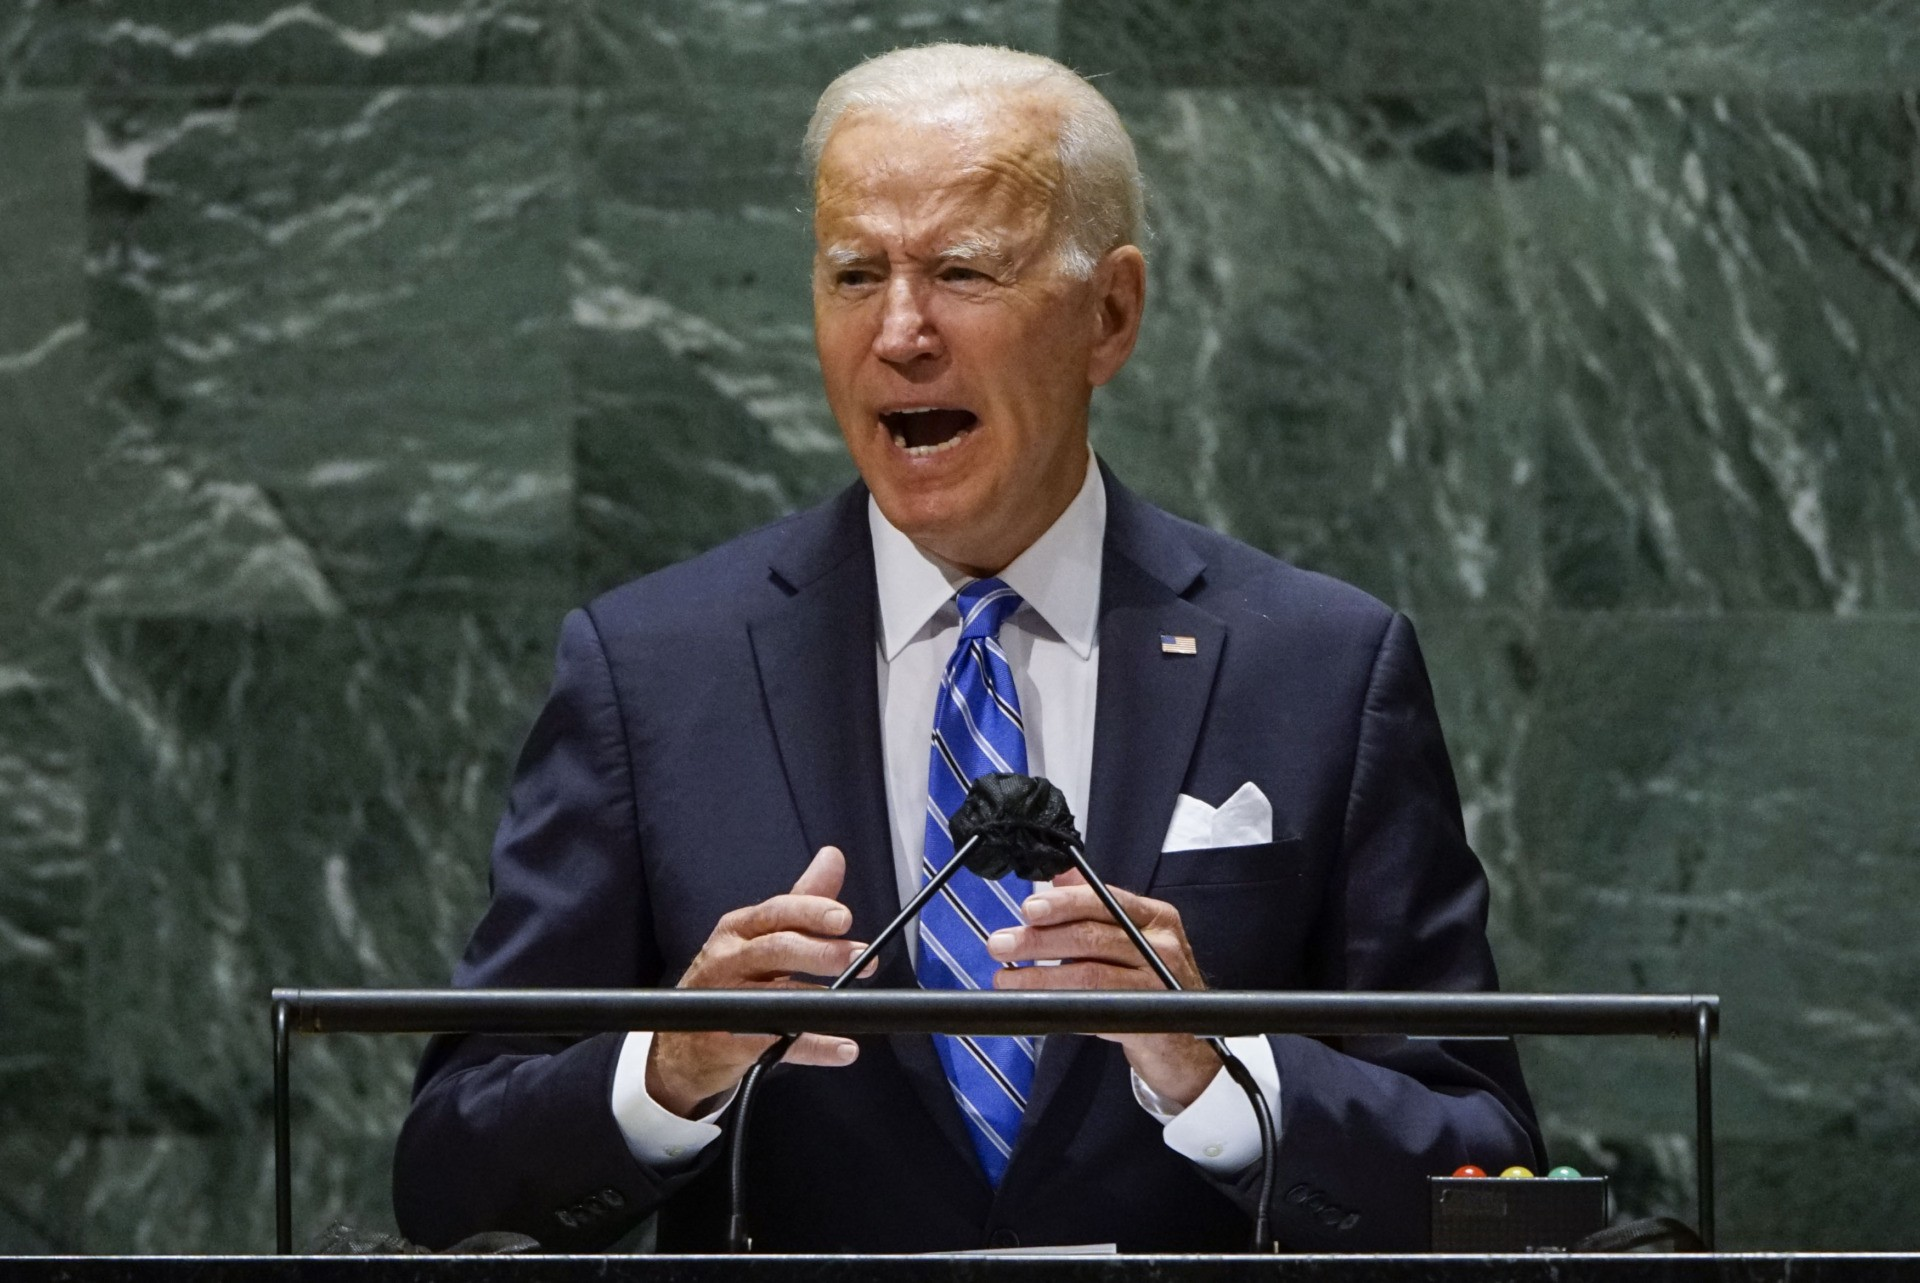 NEW YORK, NEW YORK - SEPTEMBER 21: U.S. President Joe Biden addresses the 76th Session of the U.N. General Assembly on September 21, 2021 at U.N. headquarters in New York City. More than 100 heads of state or government are attending the session in person, although the size of delegations is smaller due to the Covid-19 pandemic. (Photo by Eduardo Munoz-Pool/Getty Images)